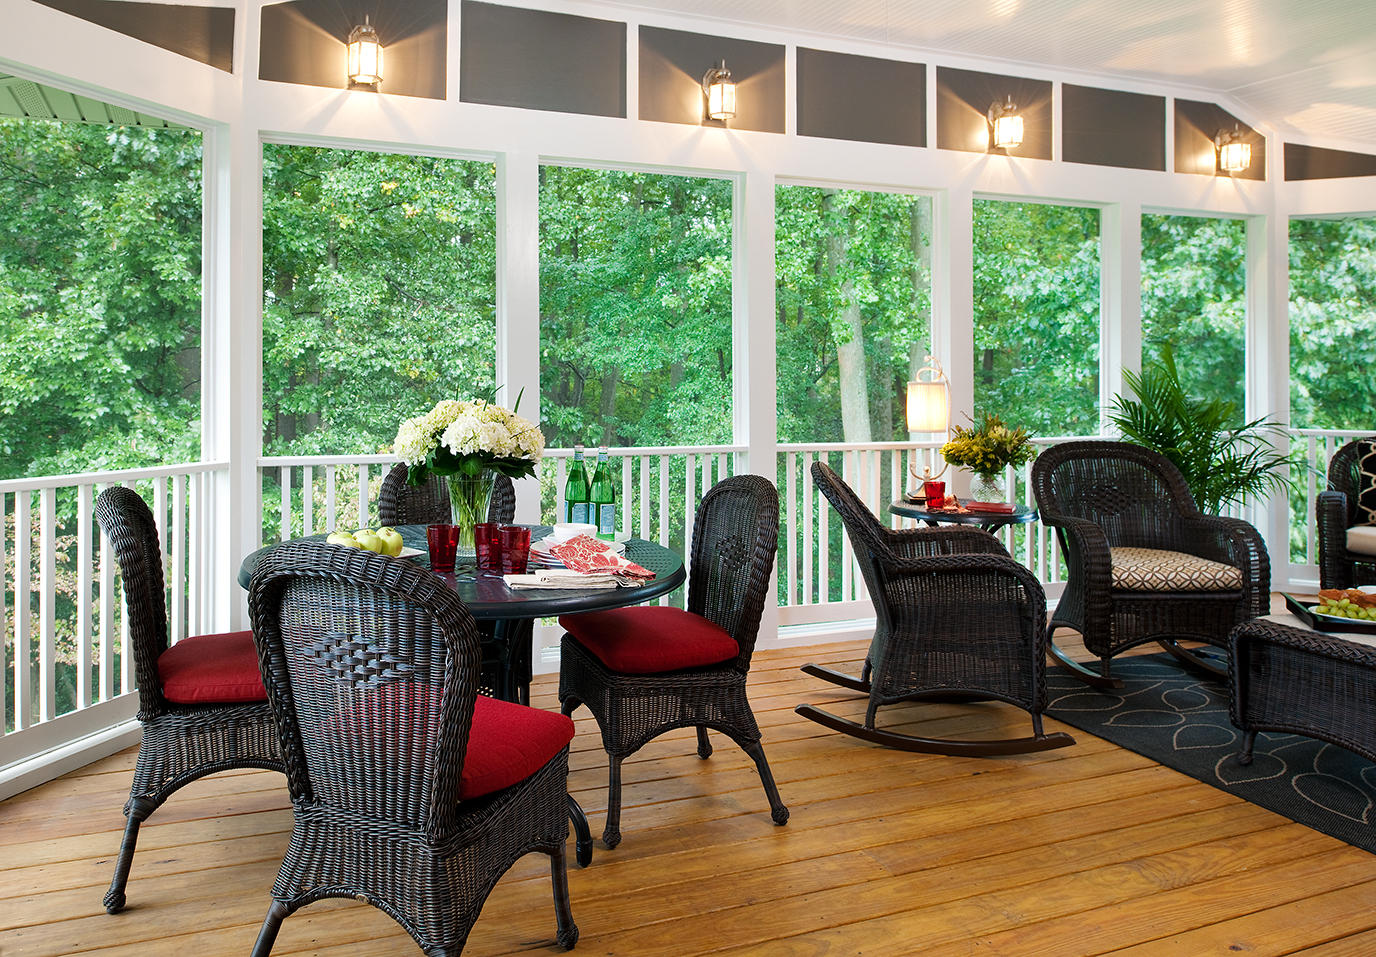 screened in porch desings_pops of color 2_source pinterest